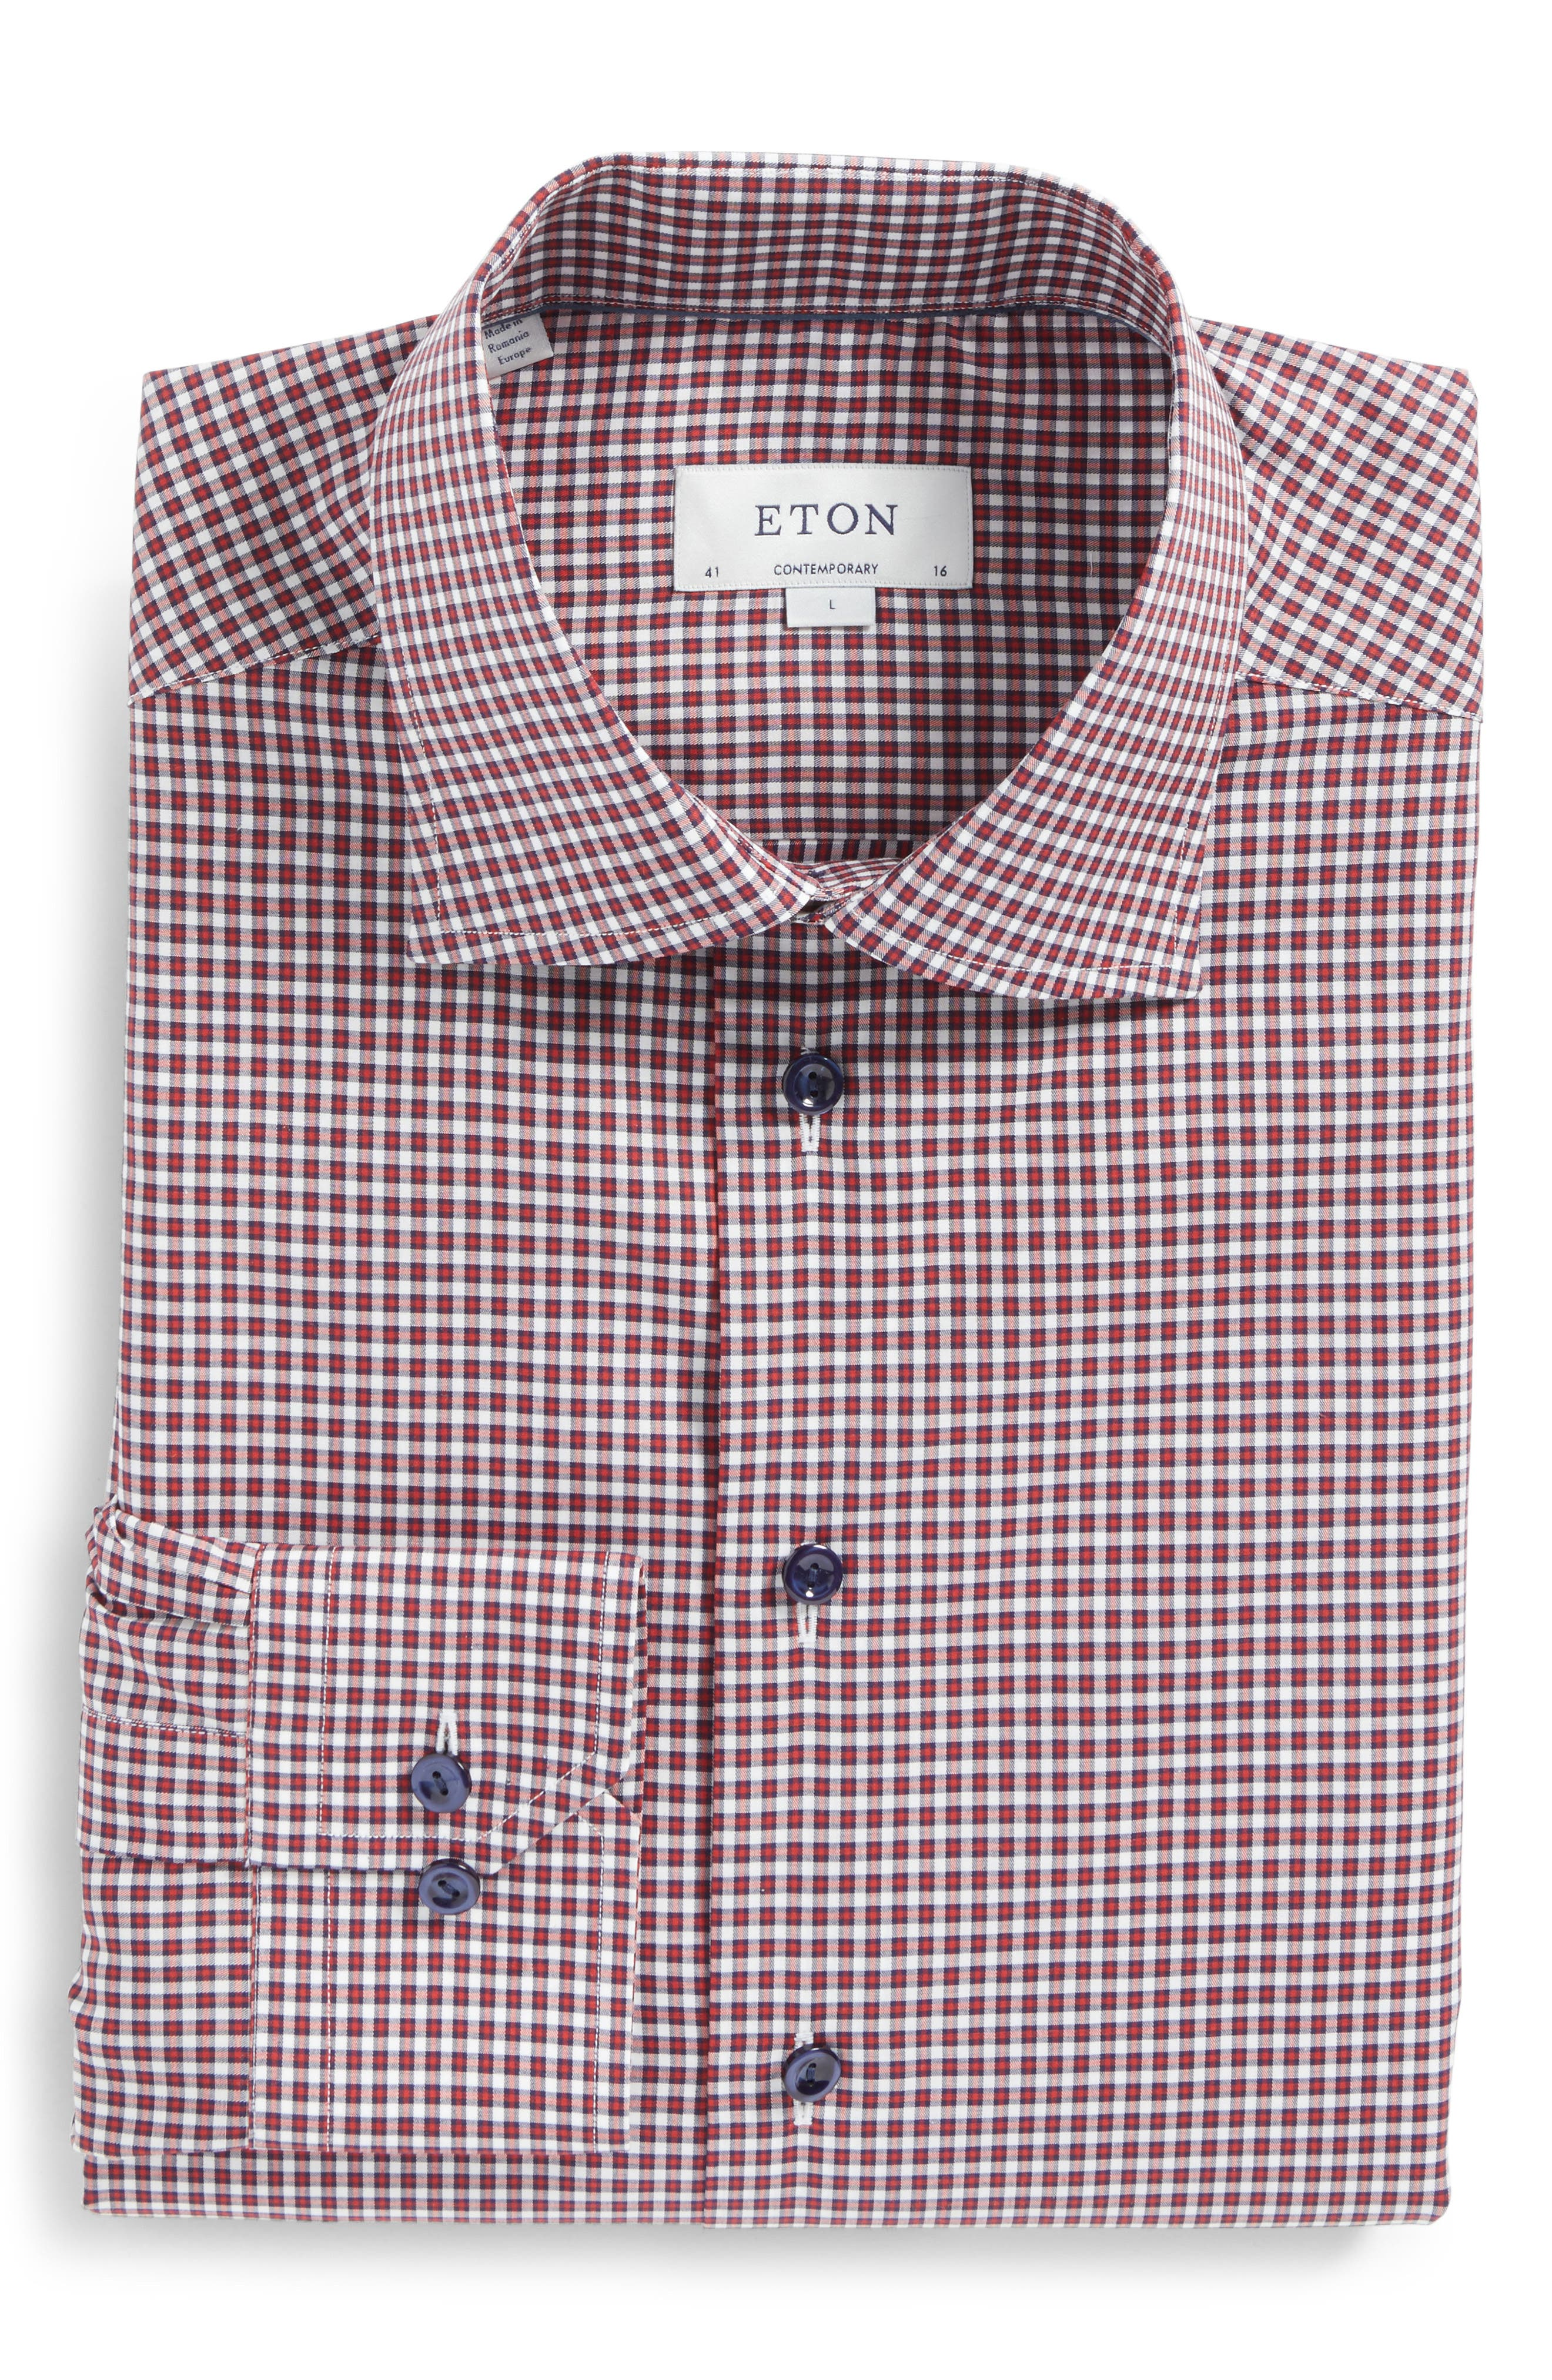 Alternate Image 1 Selected - Eton Contemporary Fit Check Dress Shirt